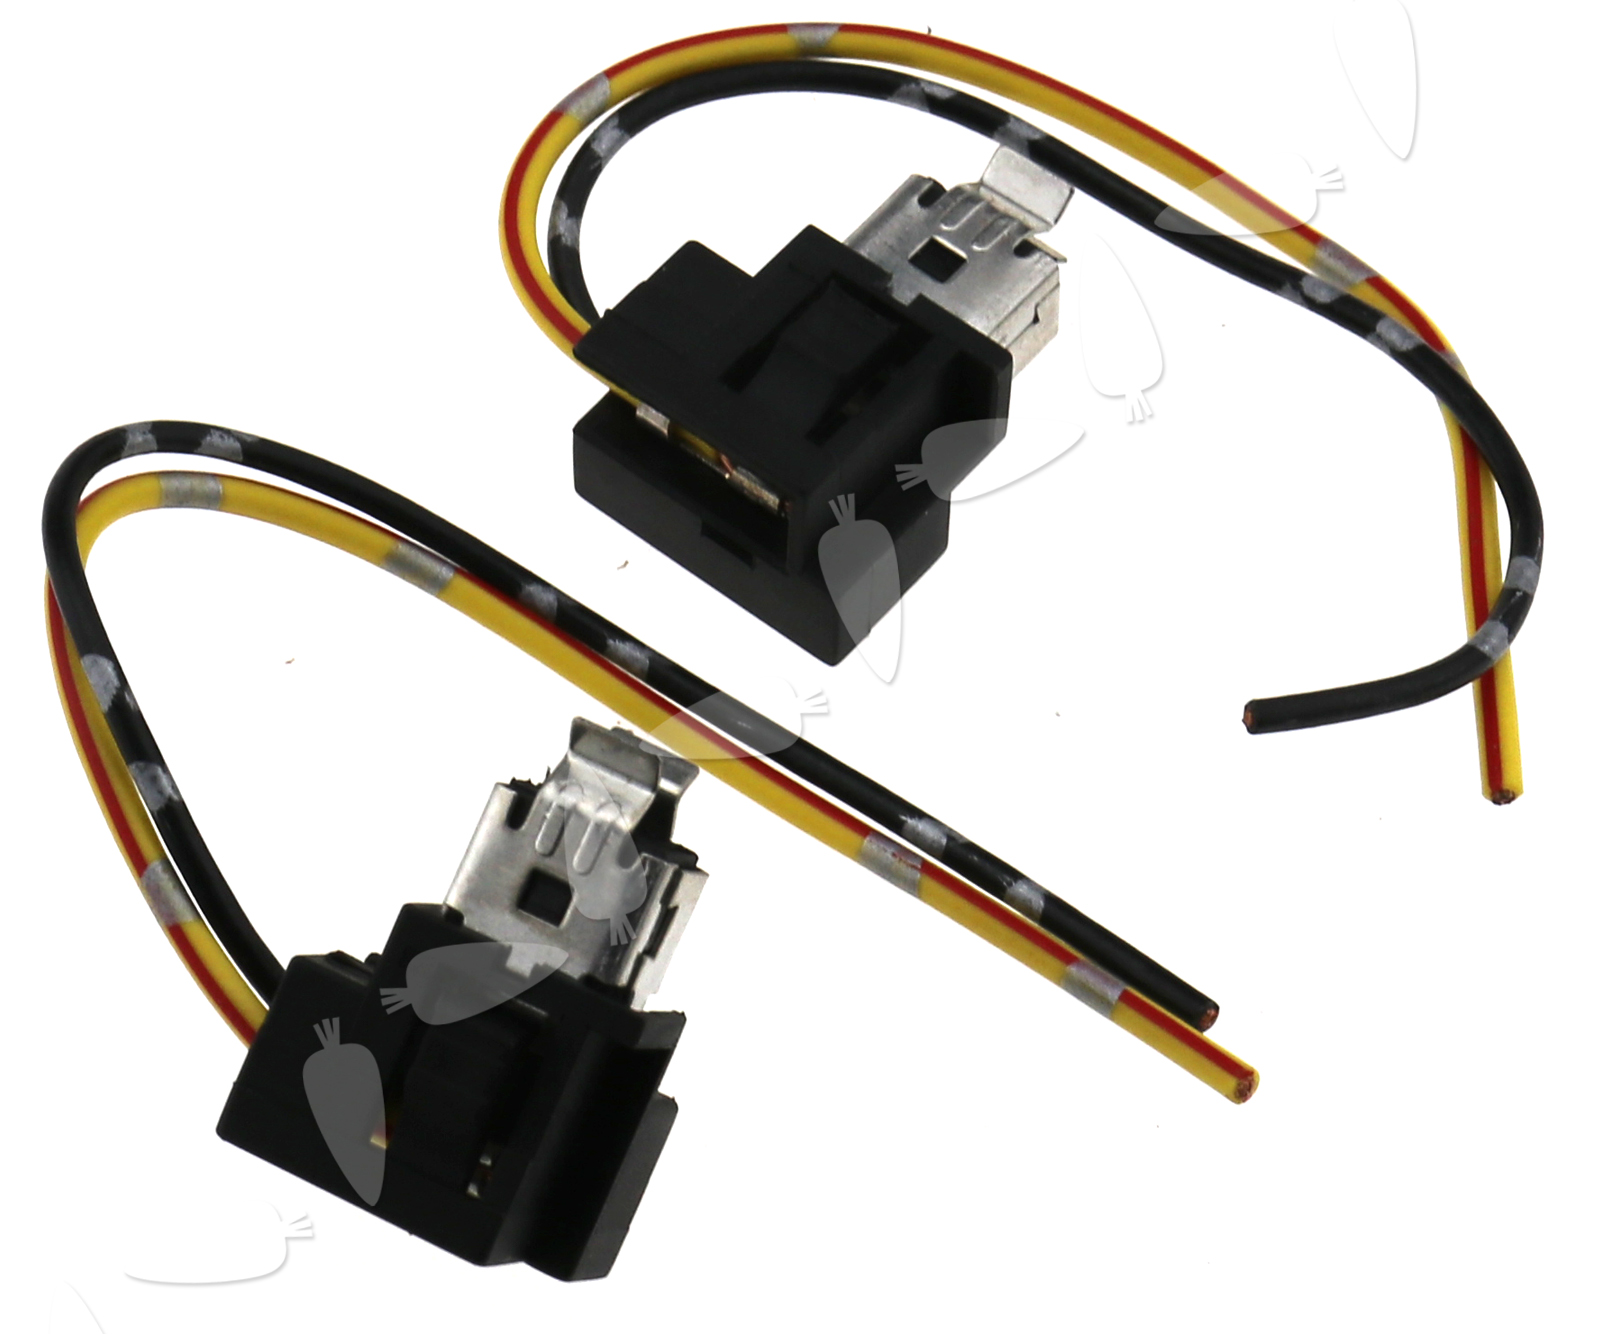 h1 bulb wiring 1974 kawasaki h1 500 wiring diagram h1 headlight fog lamp bulb socket holder wiring connector ...